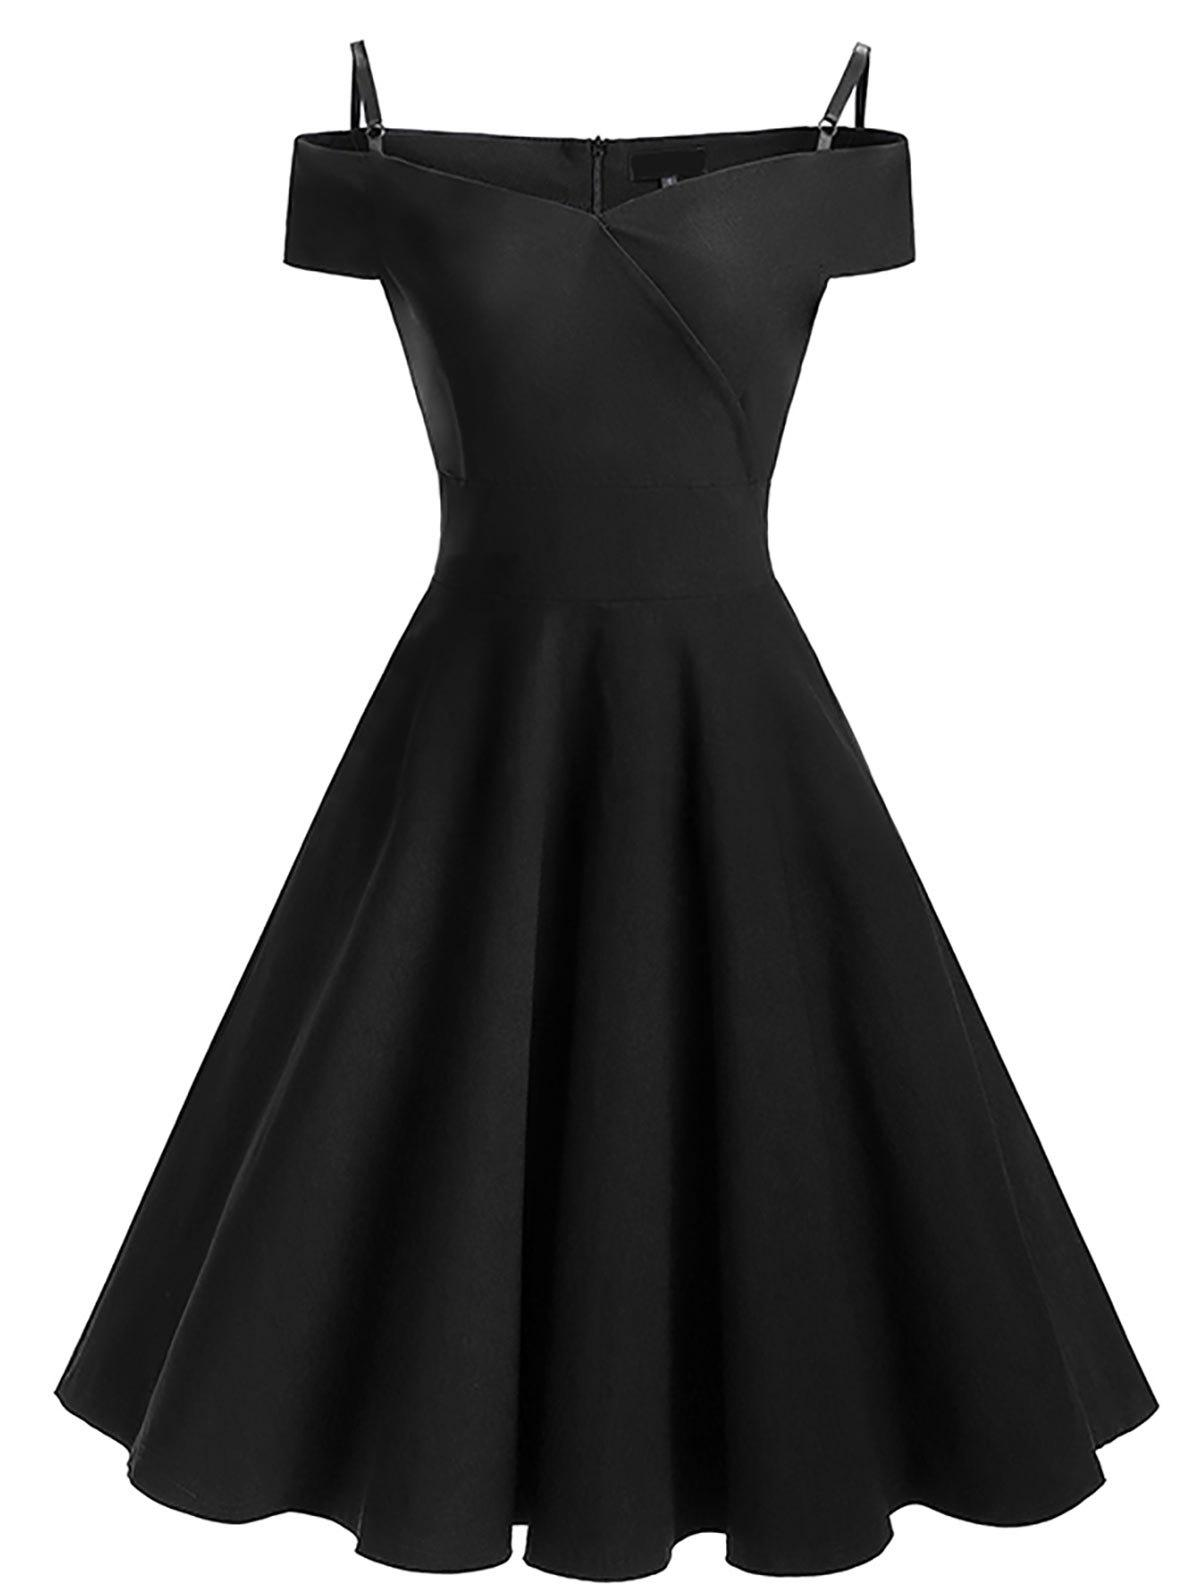 2018 Vintage Cold Shoulder Skater Pin Up Dress Black Xl In Vintage